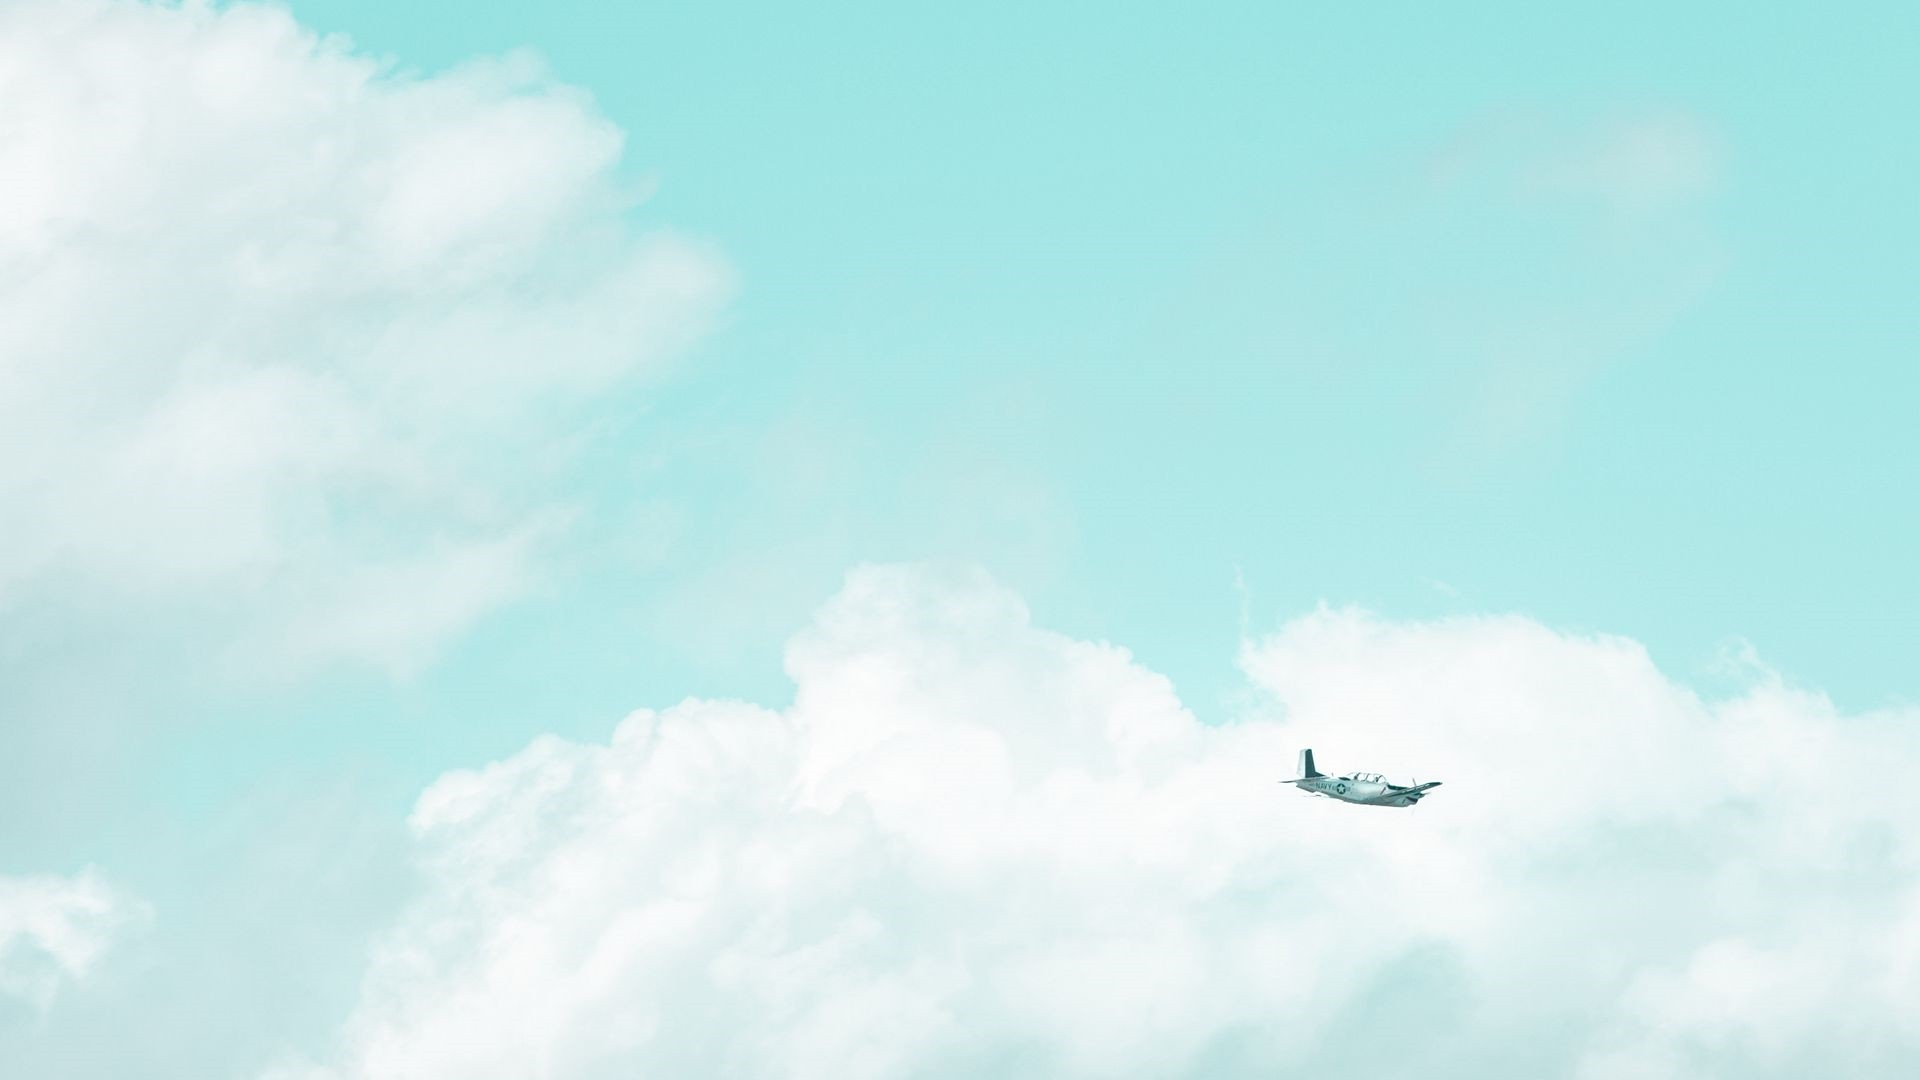 Sky Minimalist Wallpaper and Background